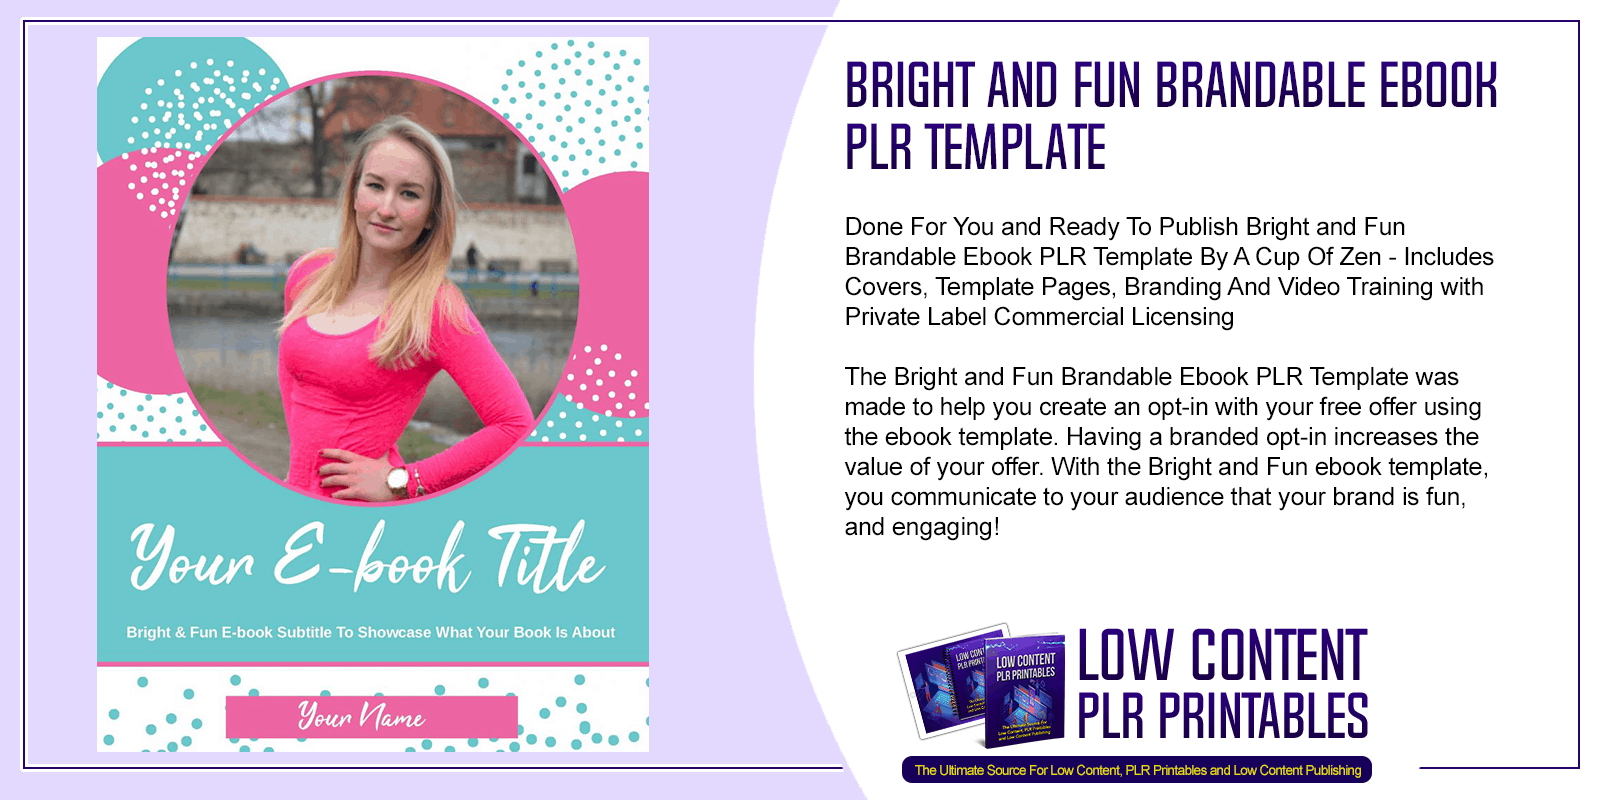 Bright and Fun Brandable Ebook PLR Template